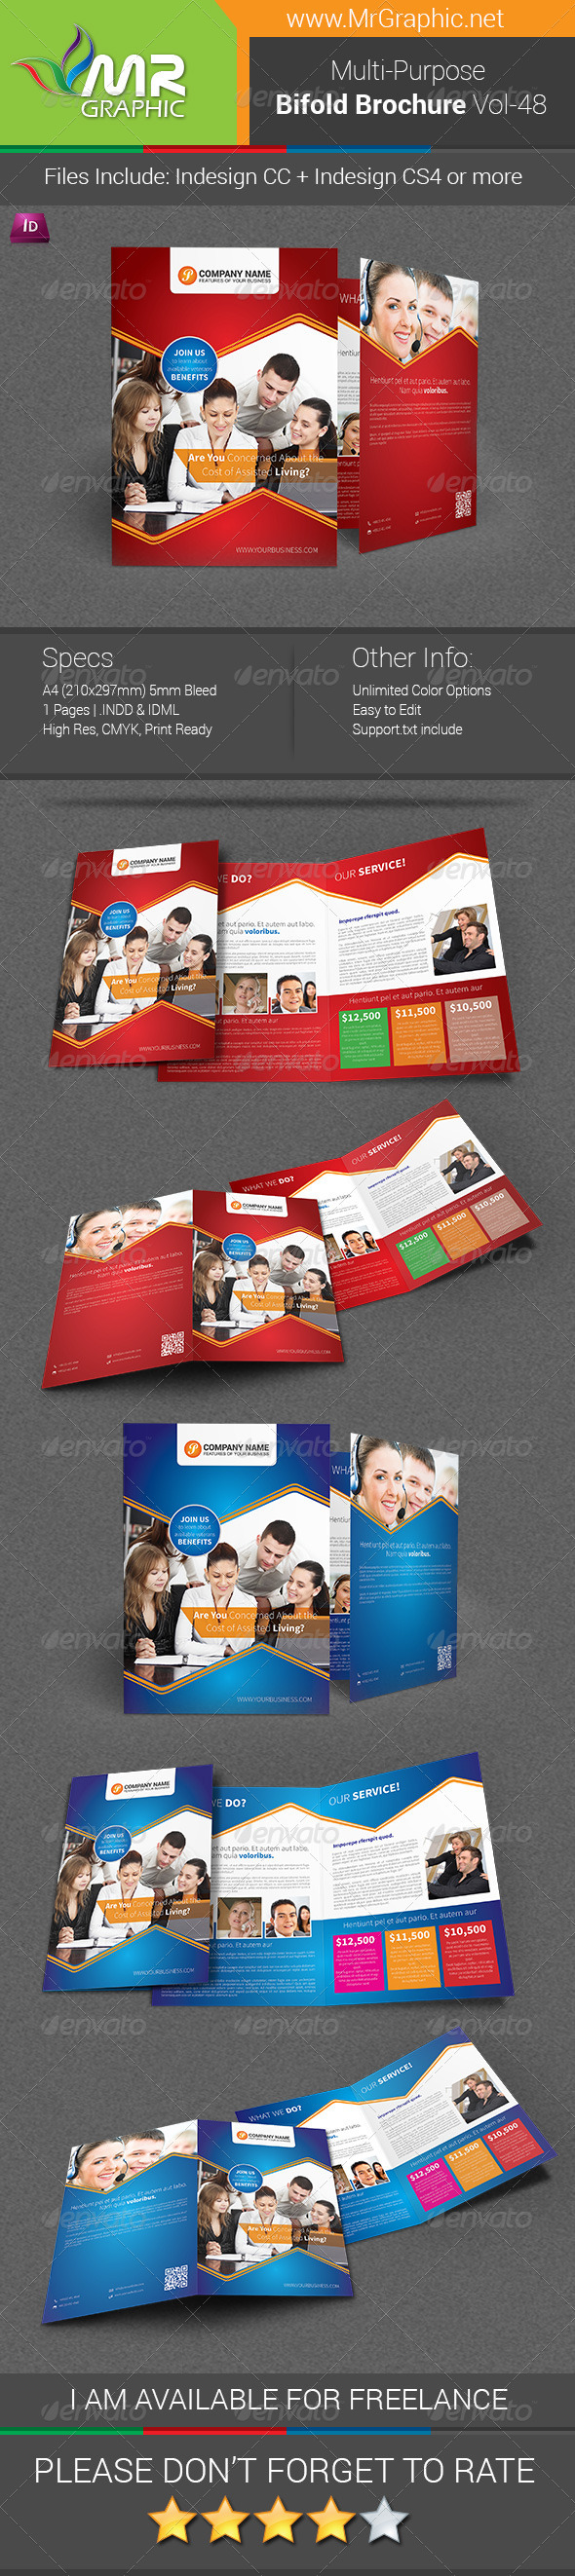 Multipurpose Bifold Brochure Template Vol-48 - Corporate Brochures